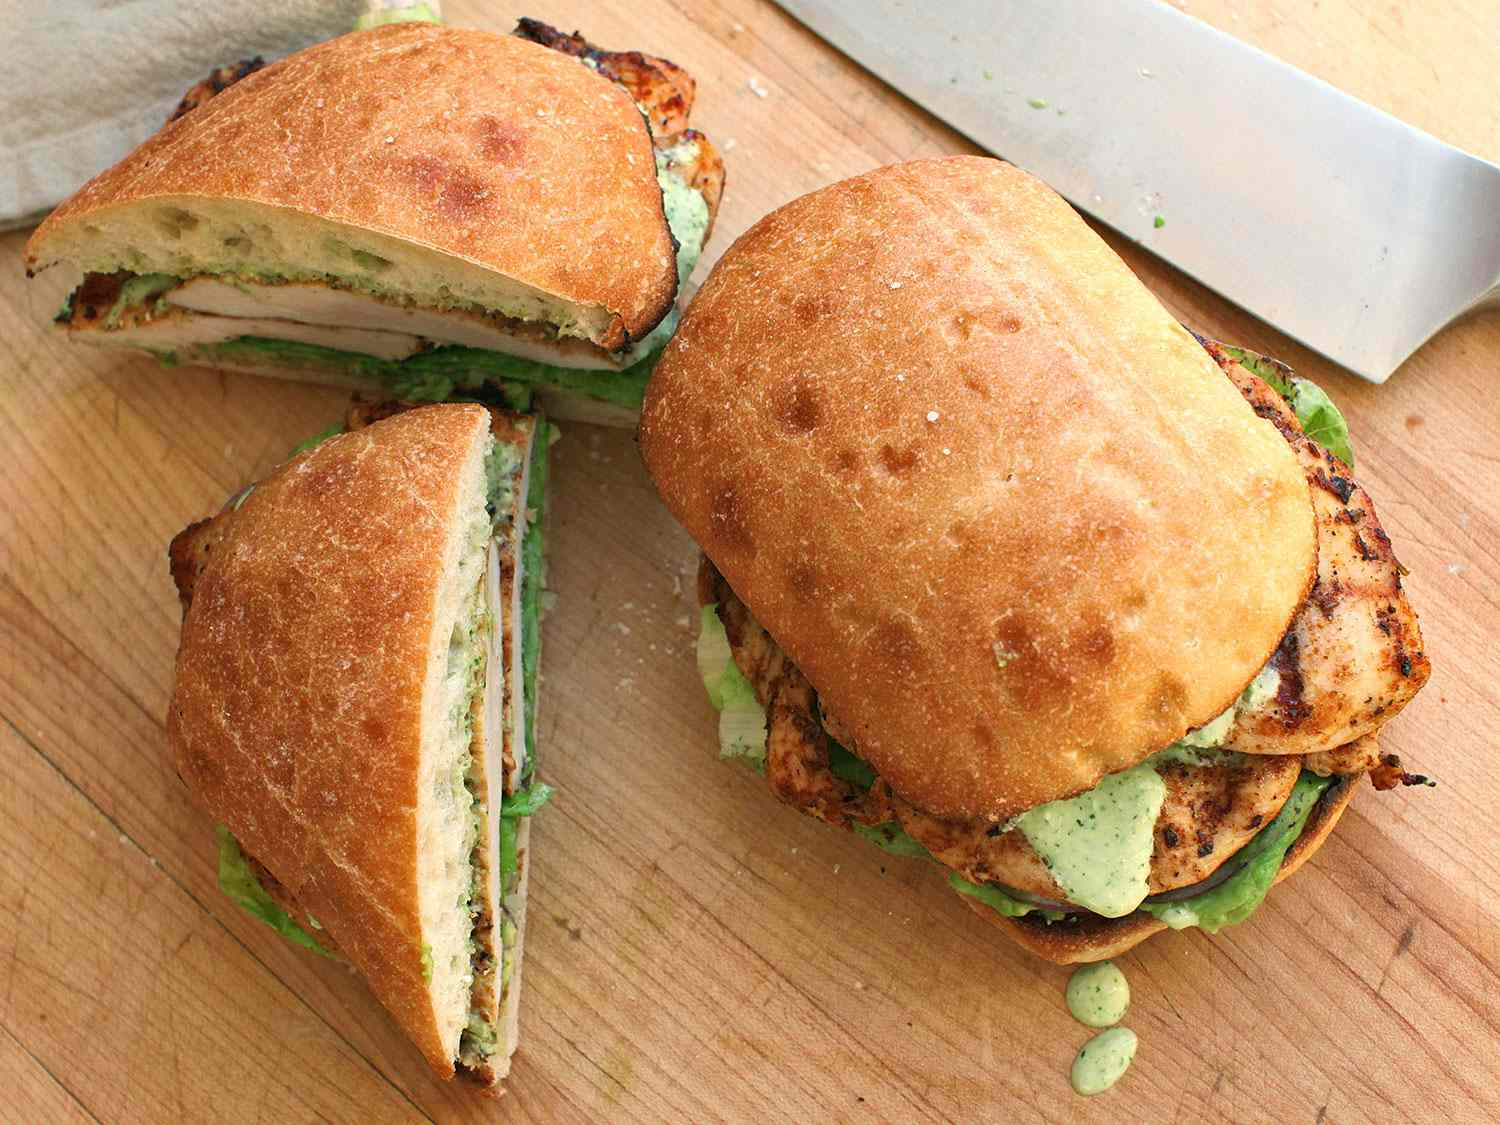 Peruvian grilled-chicken sandwiches topped with lettuce, avocado, and a cilantro-jalapeño sauce